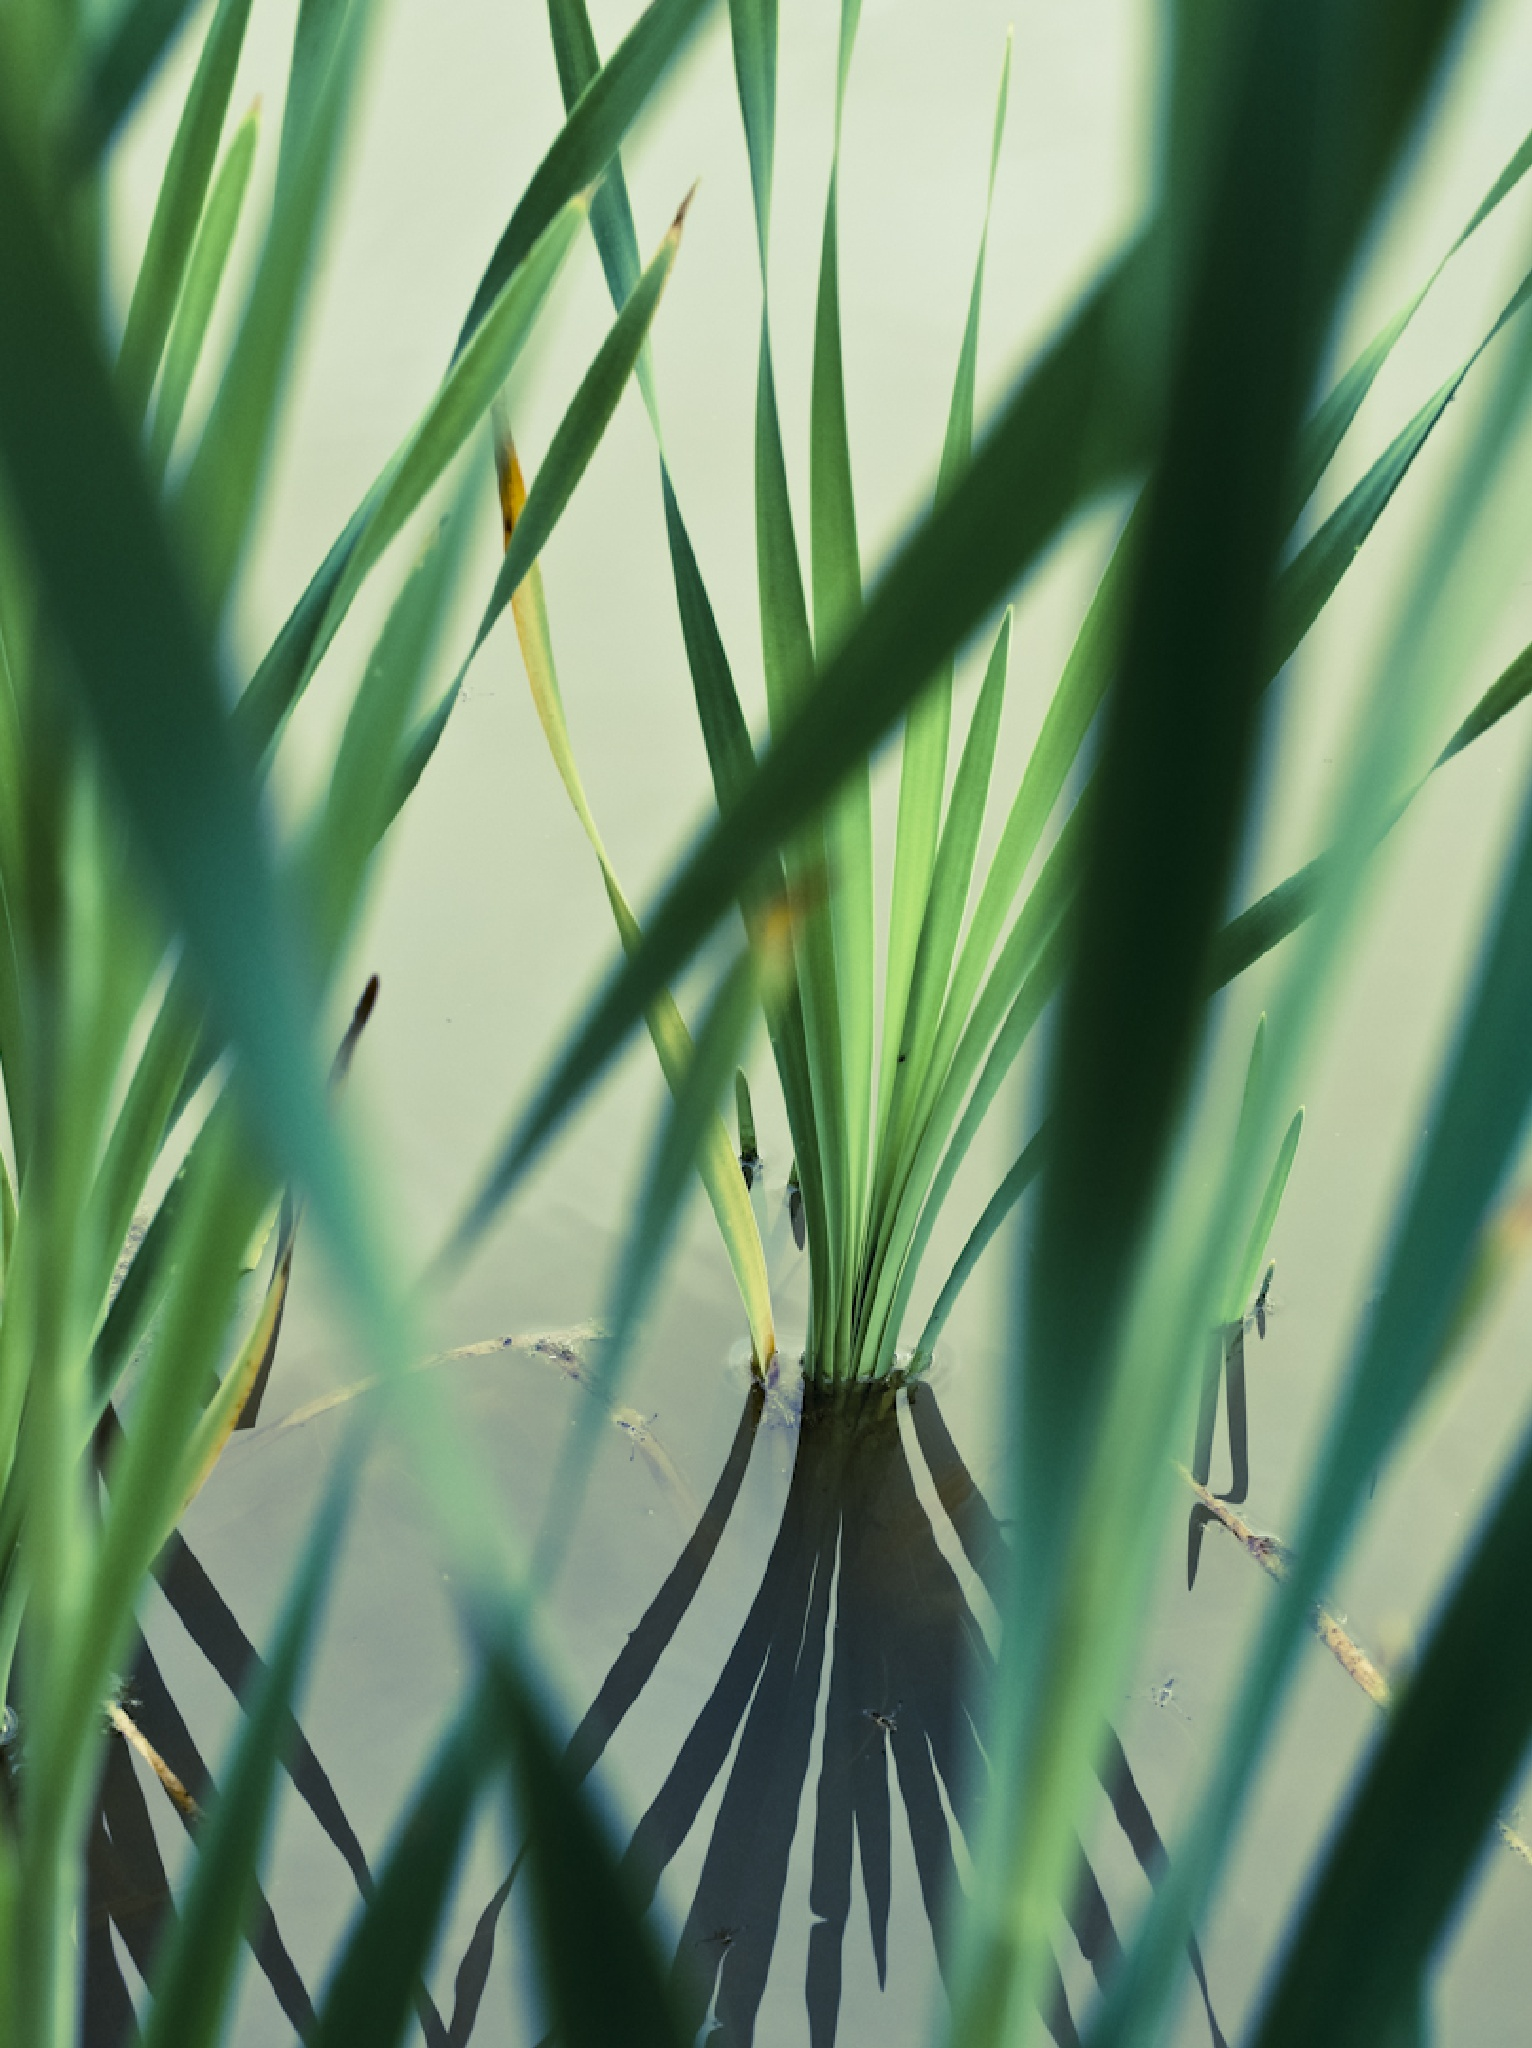 Sedges by Sarah Walters